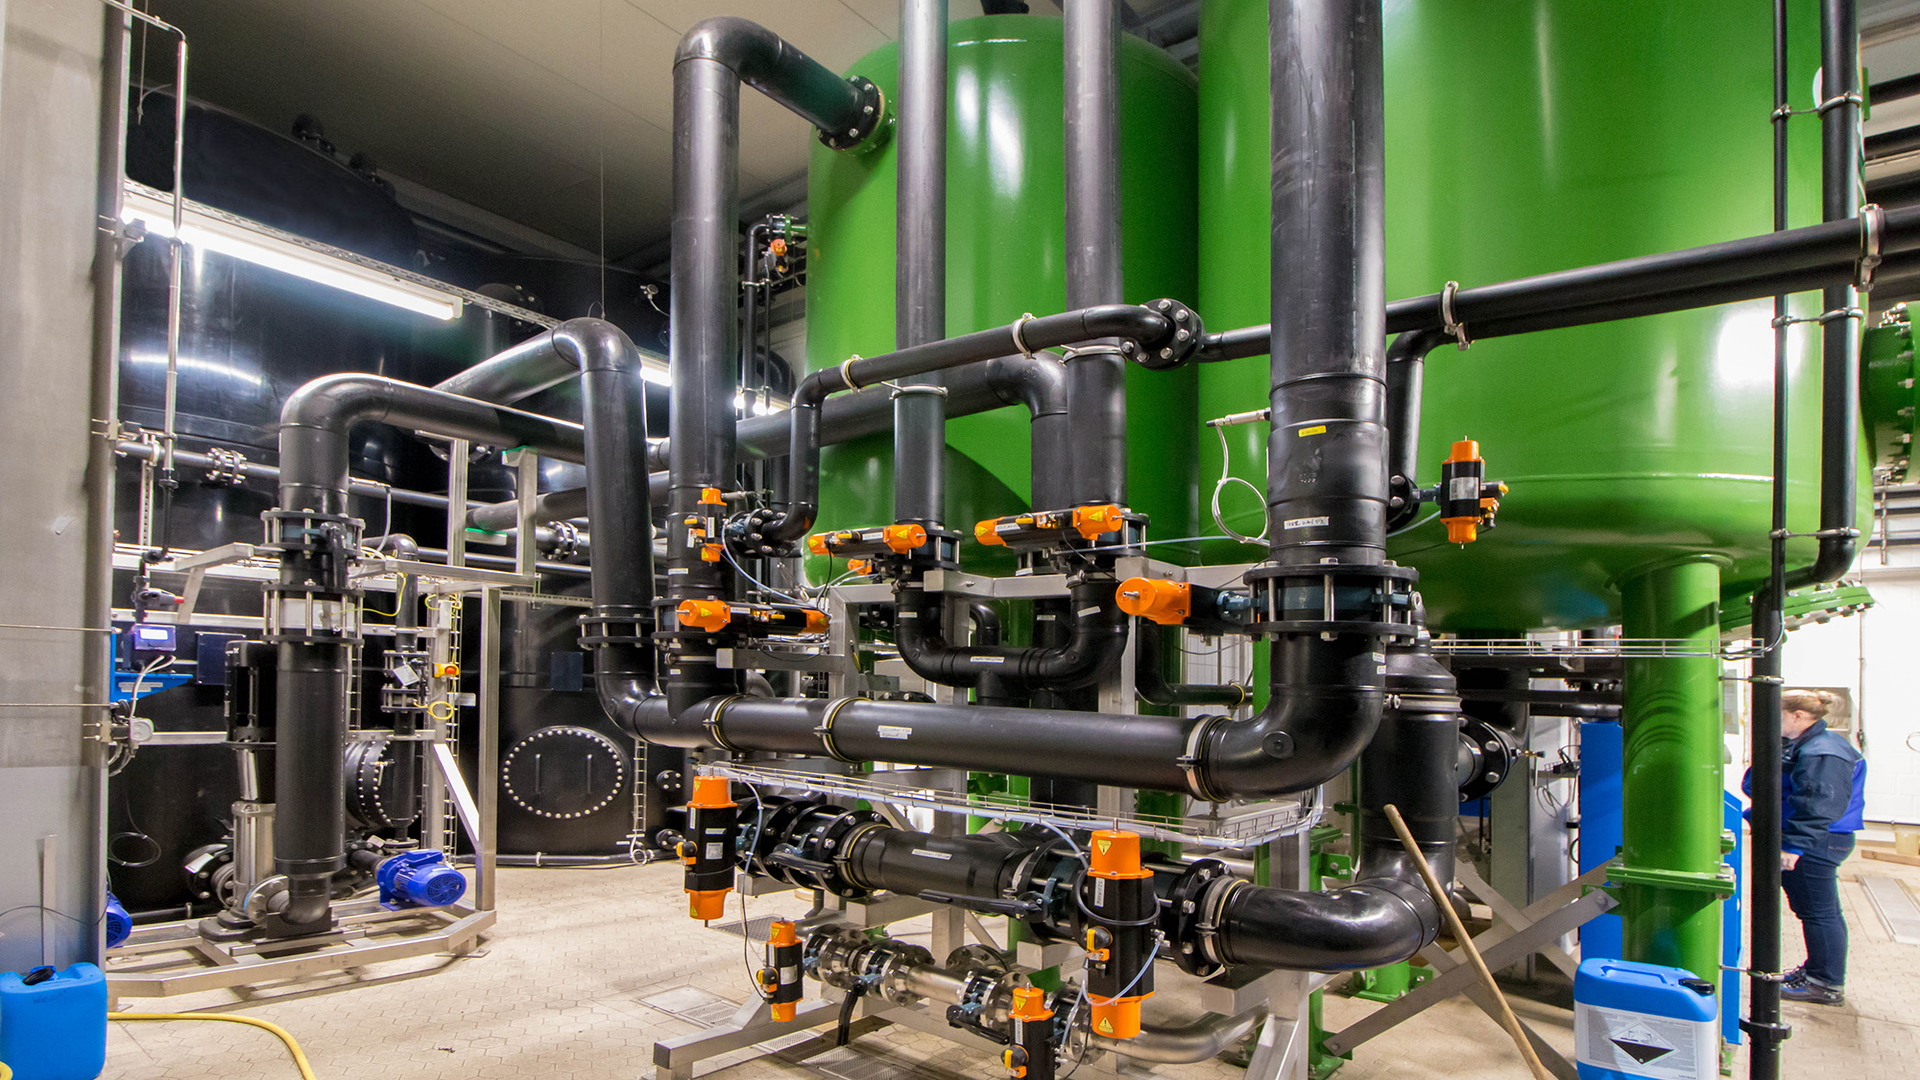 Gallery image 3 - Vapour condensate treatment with multi-layer filters for dairies